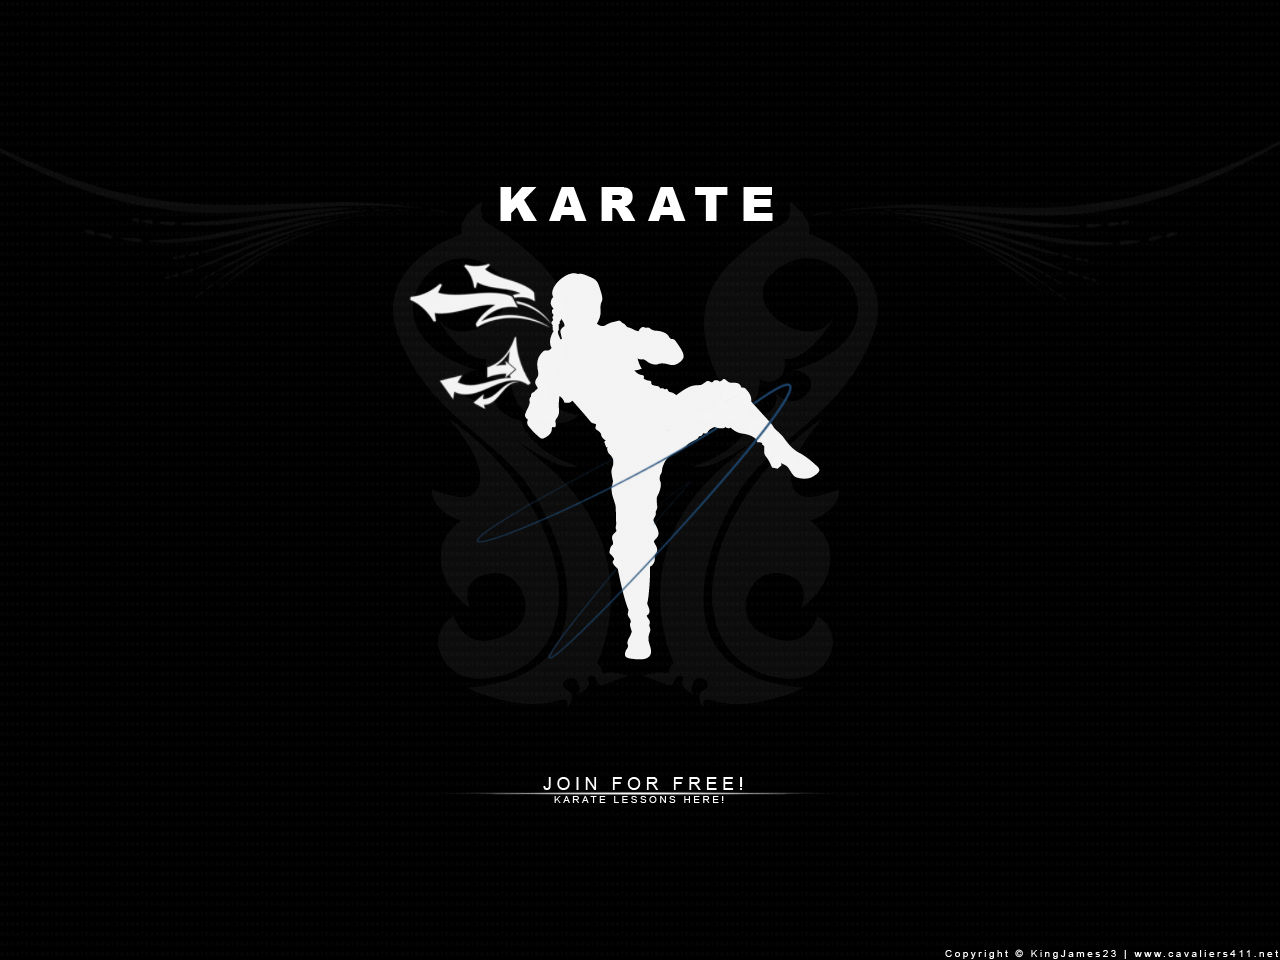 Gallery For 38818747: Karate Wallpapers, 1280x960